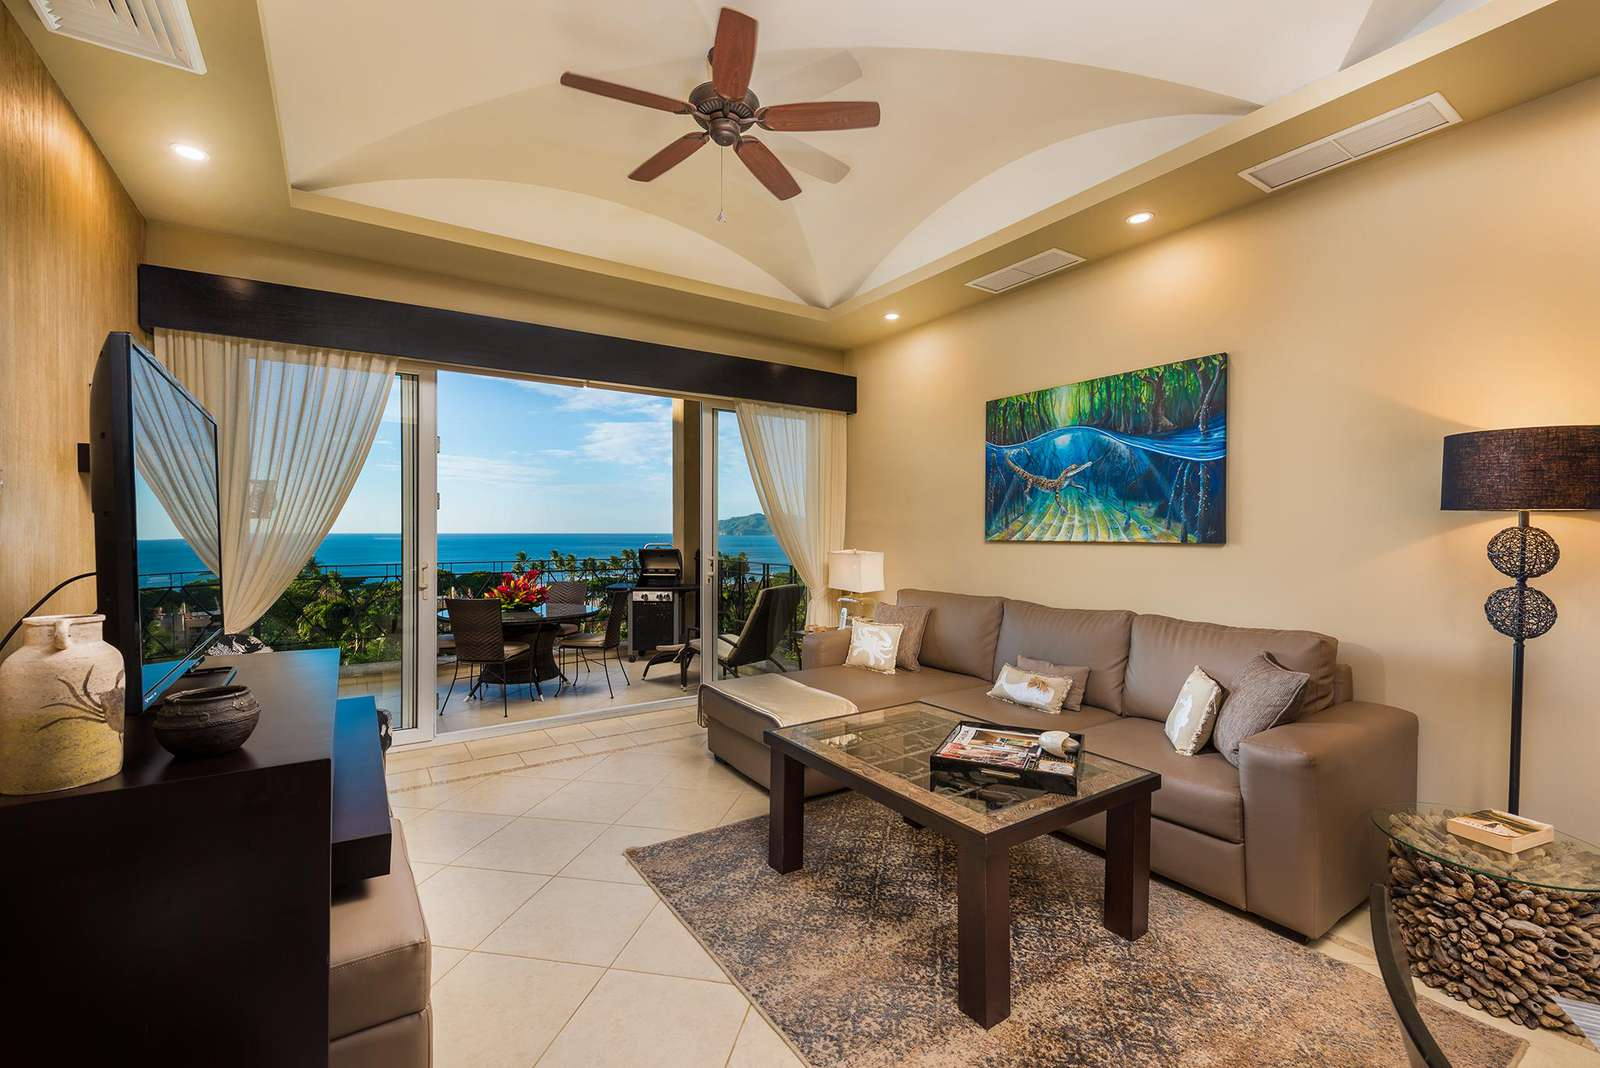 Spacious living room, seating areas and flat screen TV, ocean view